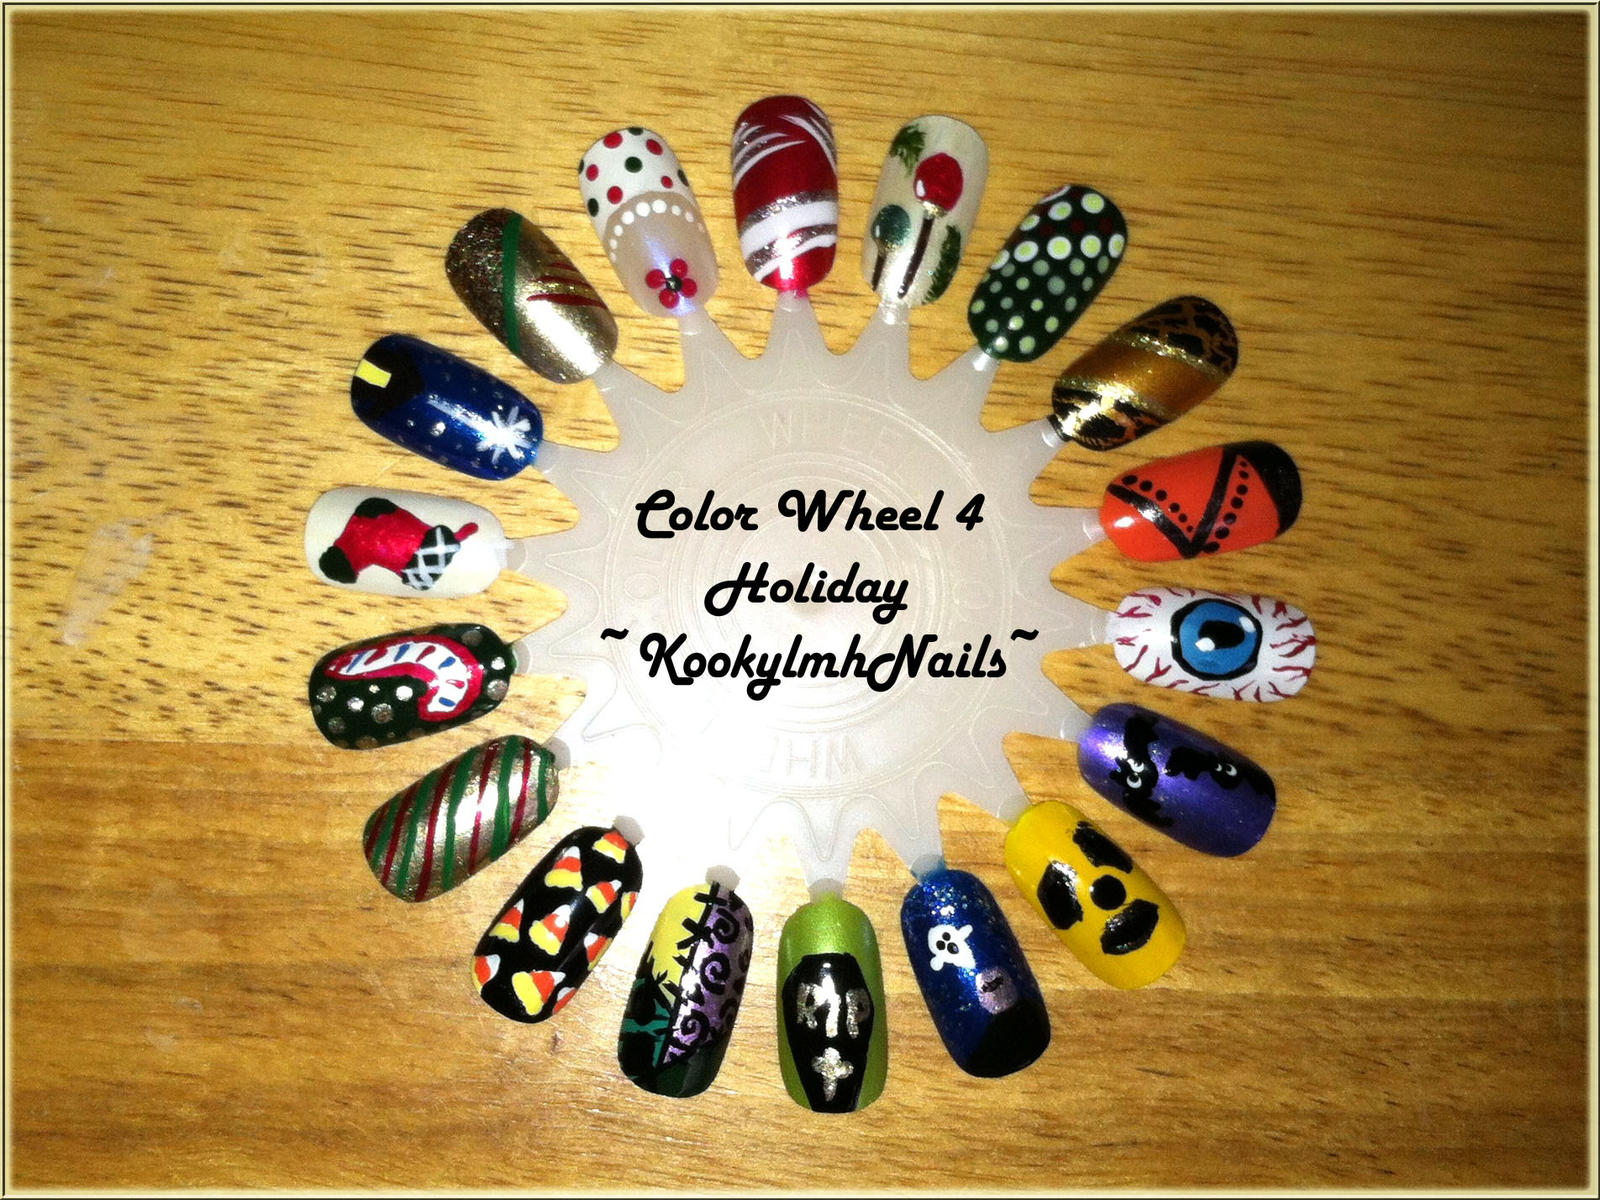 Color wheel 4 holiday nail designs by kookylmhnails on deviantart color wheel 4 holiday nail designs by kookylmhnails prinsesfo Image collections